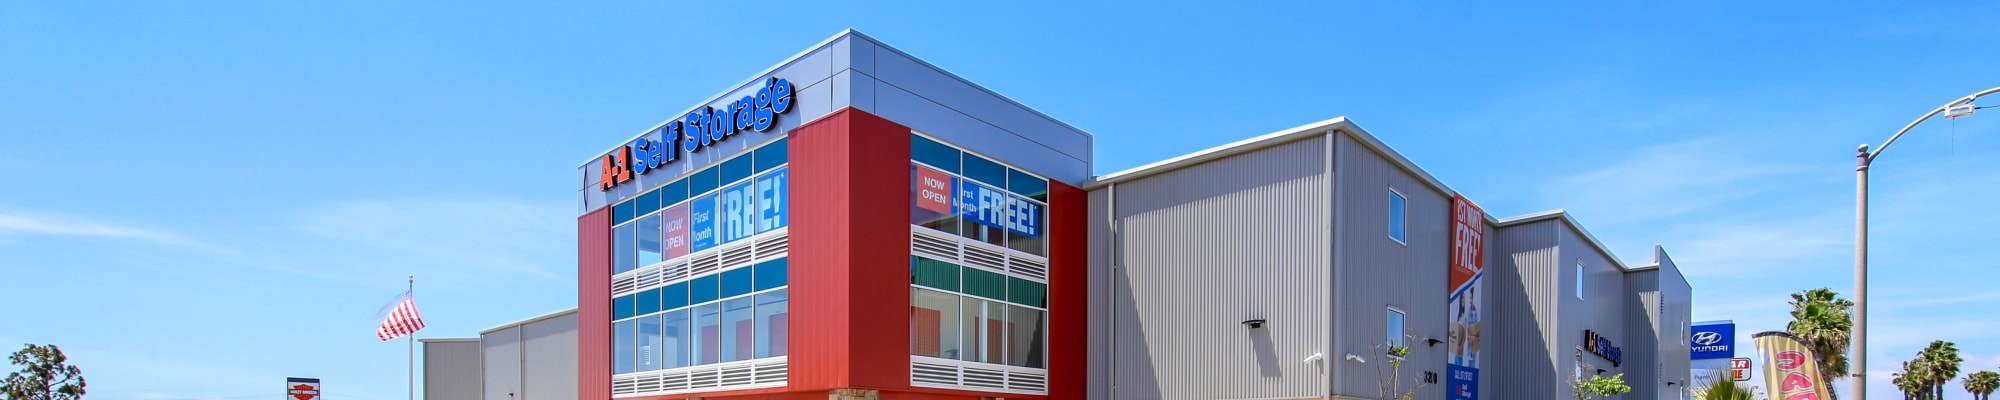 Student storage options at A-1 Self Storage in San Jose, California